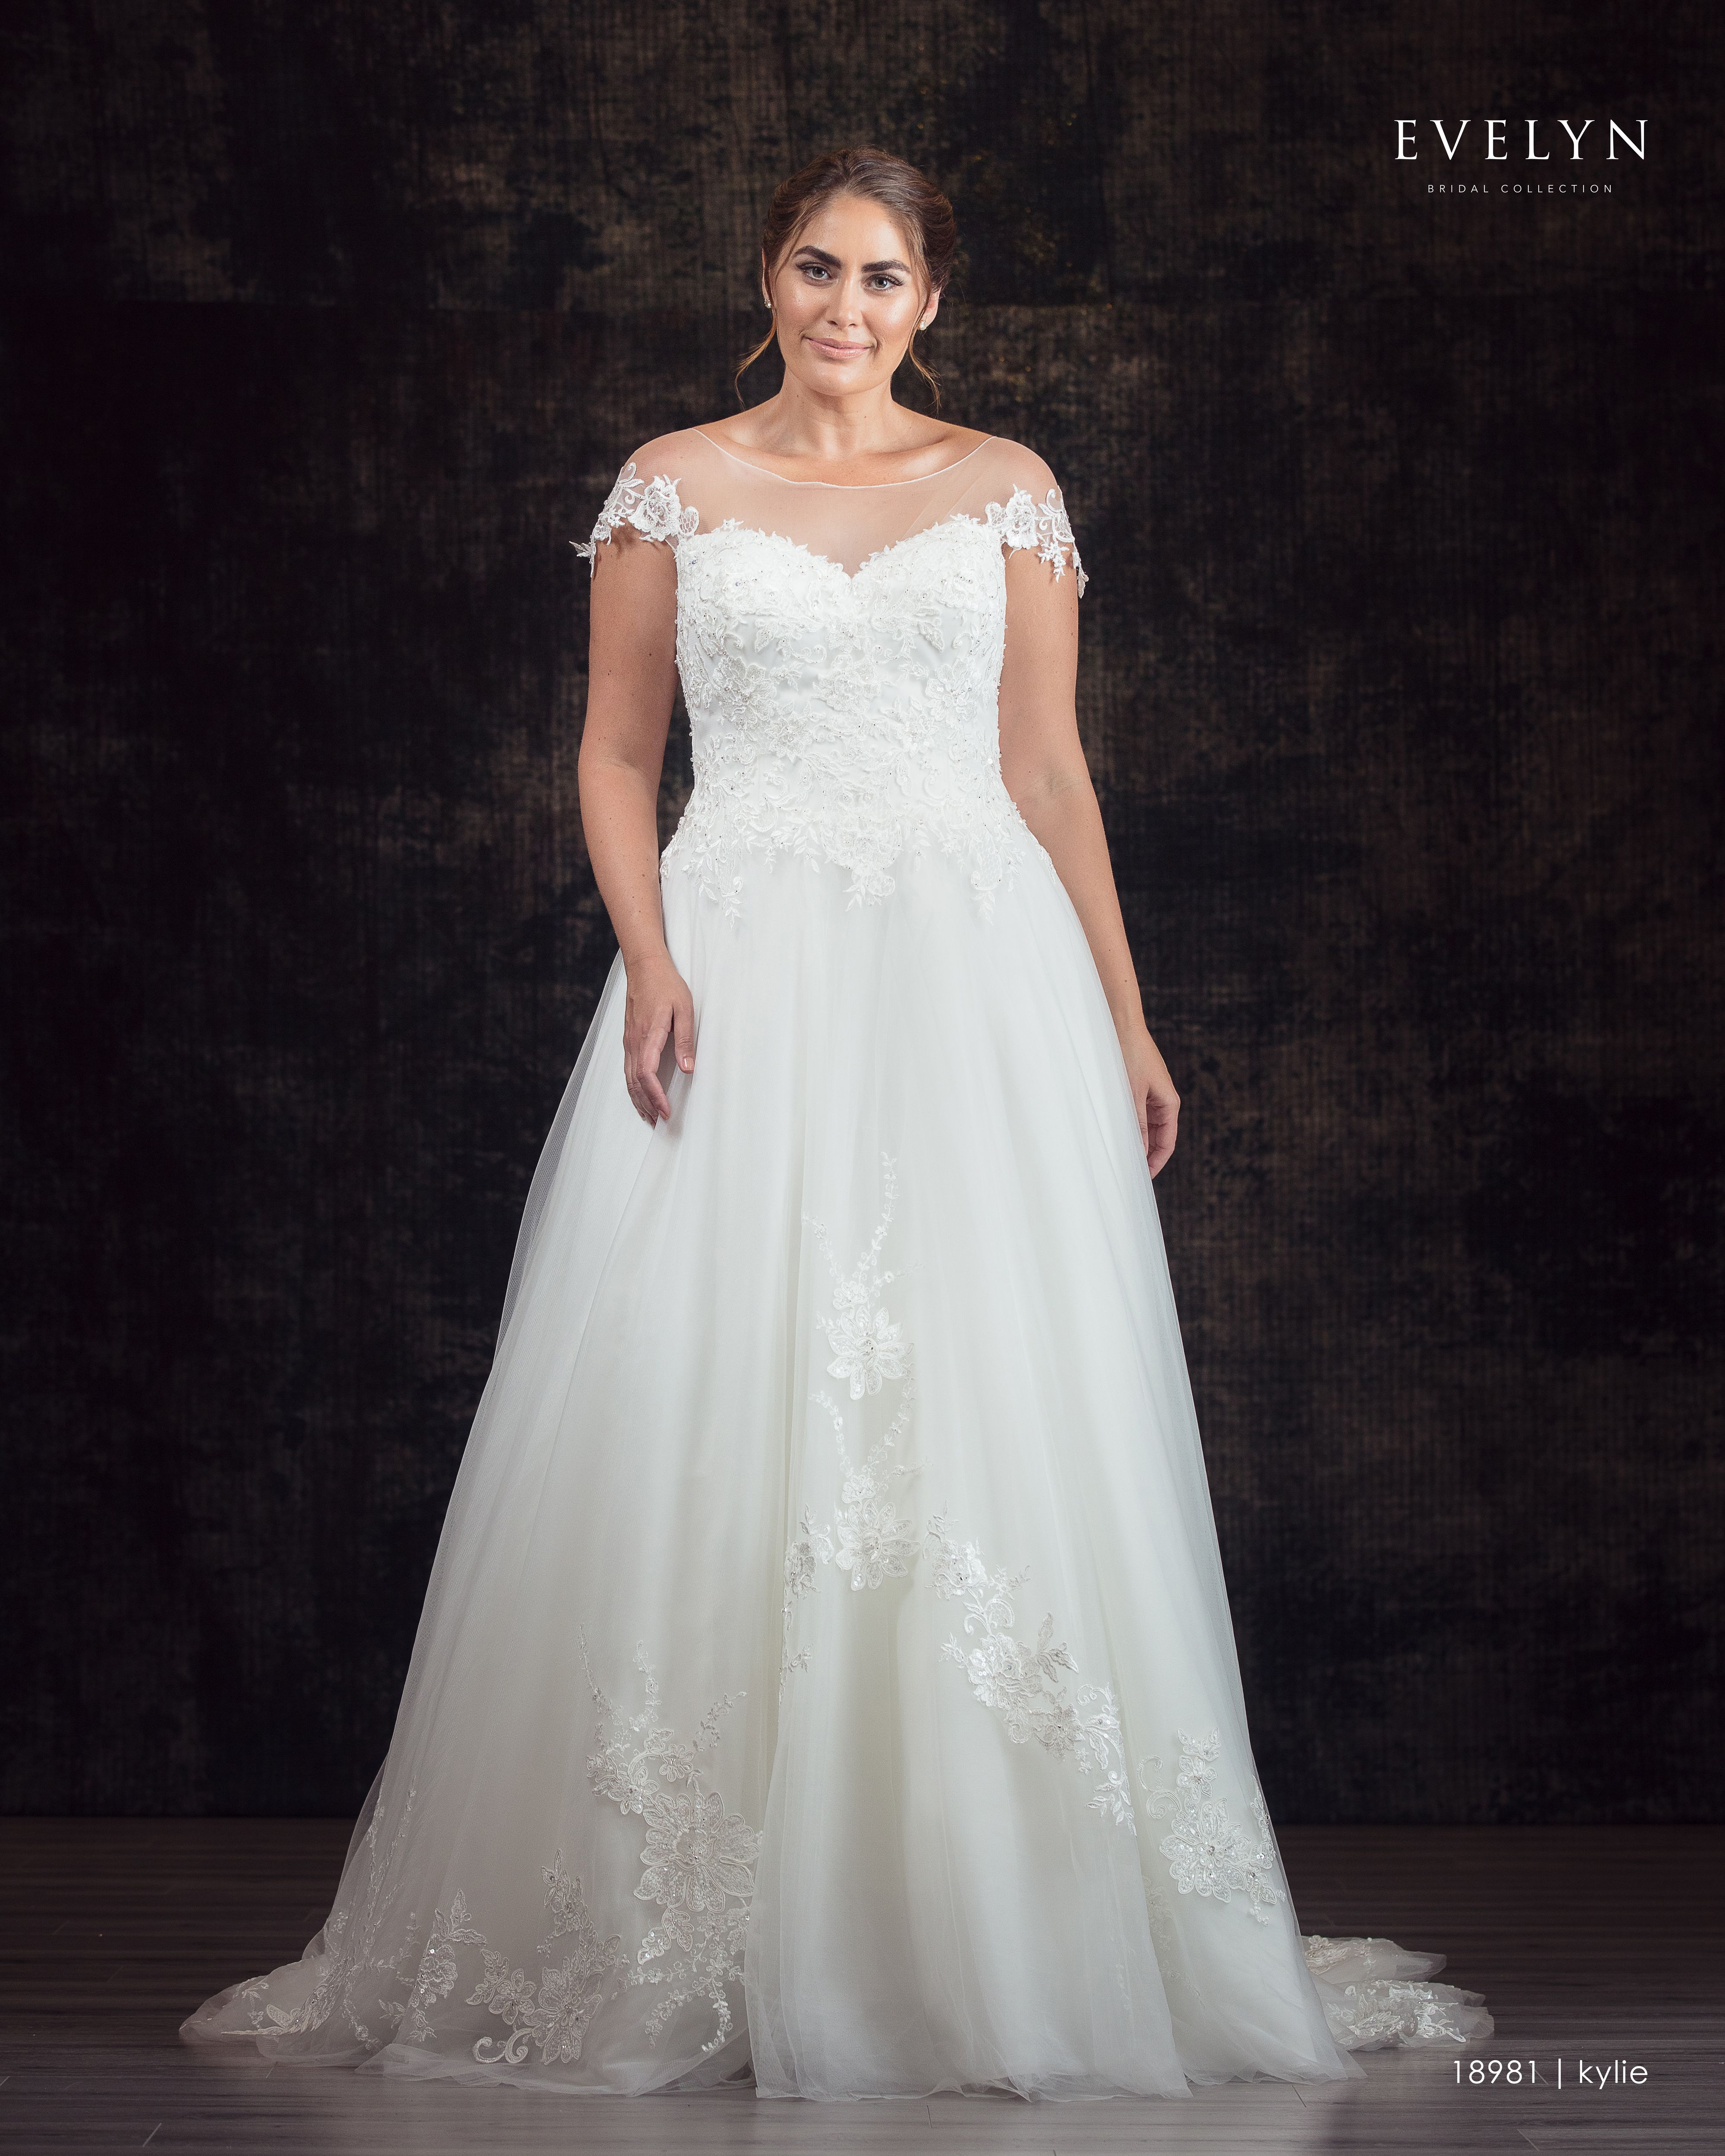 Evelyn bridal kylie this tulle ball gown features tulle cap